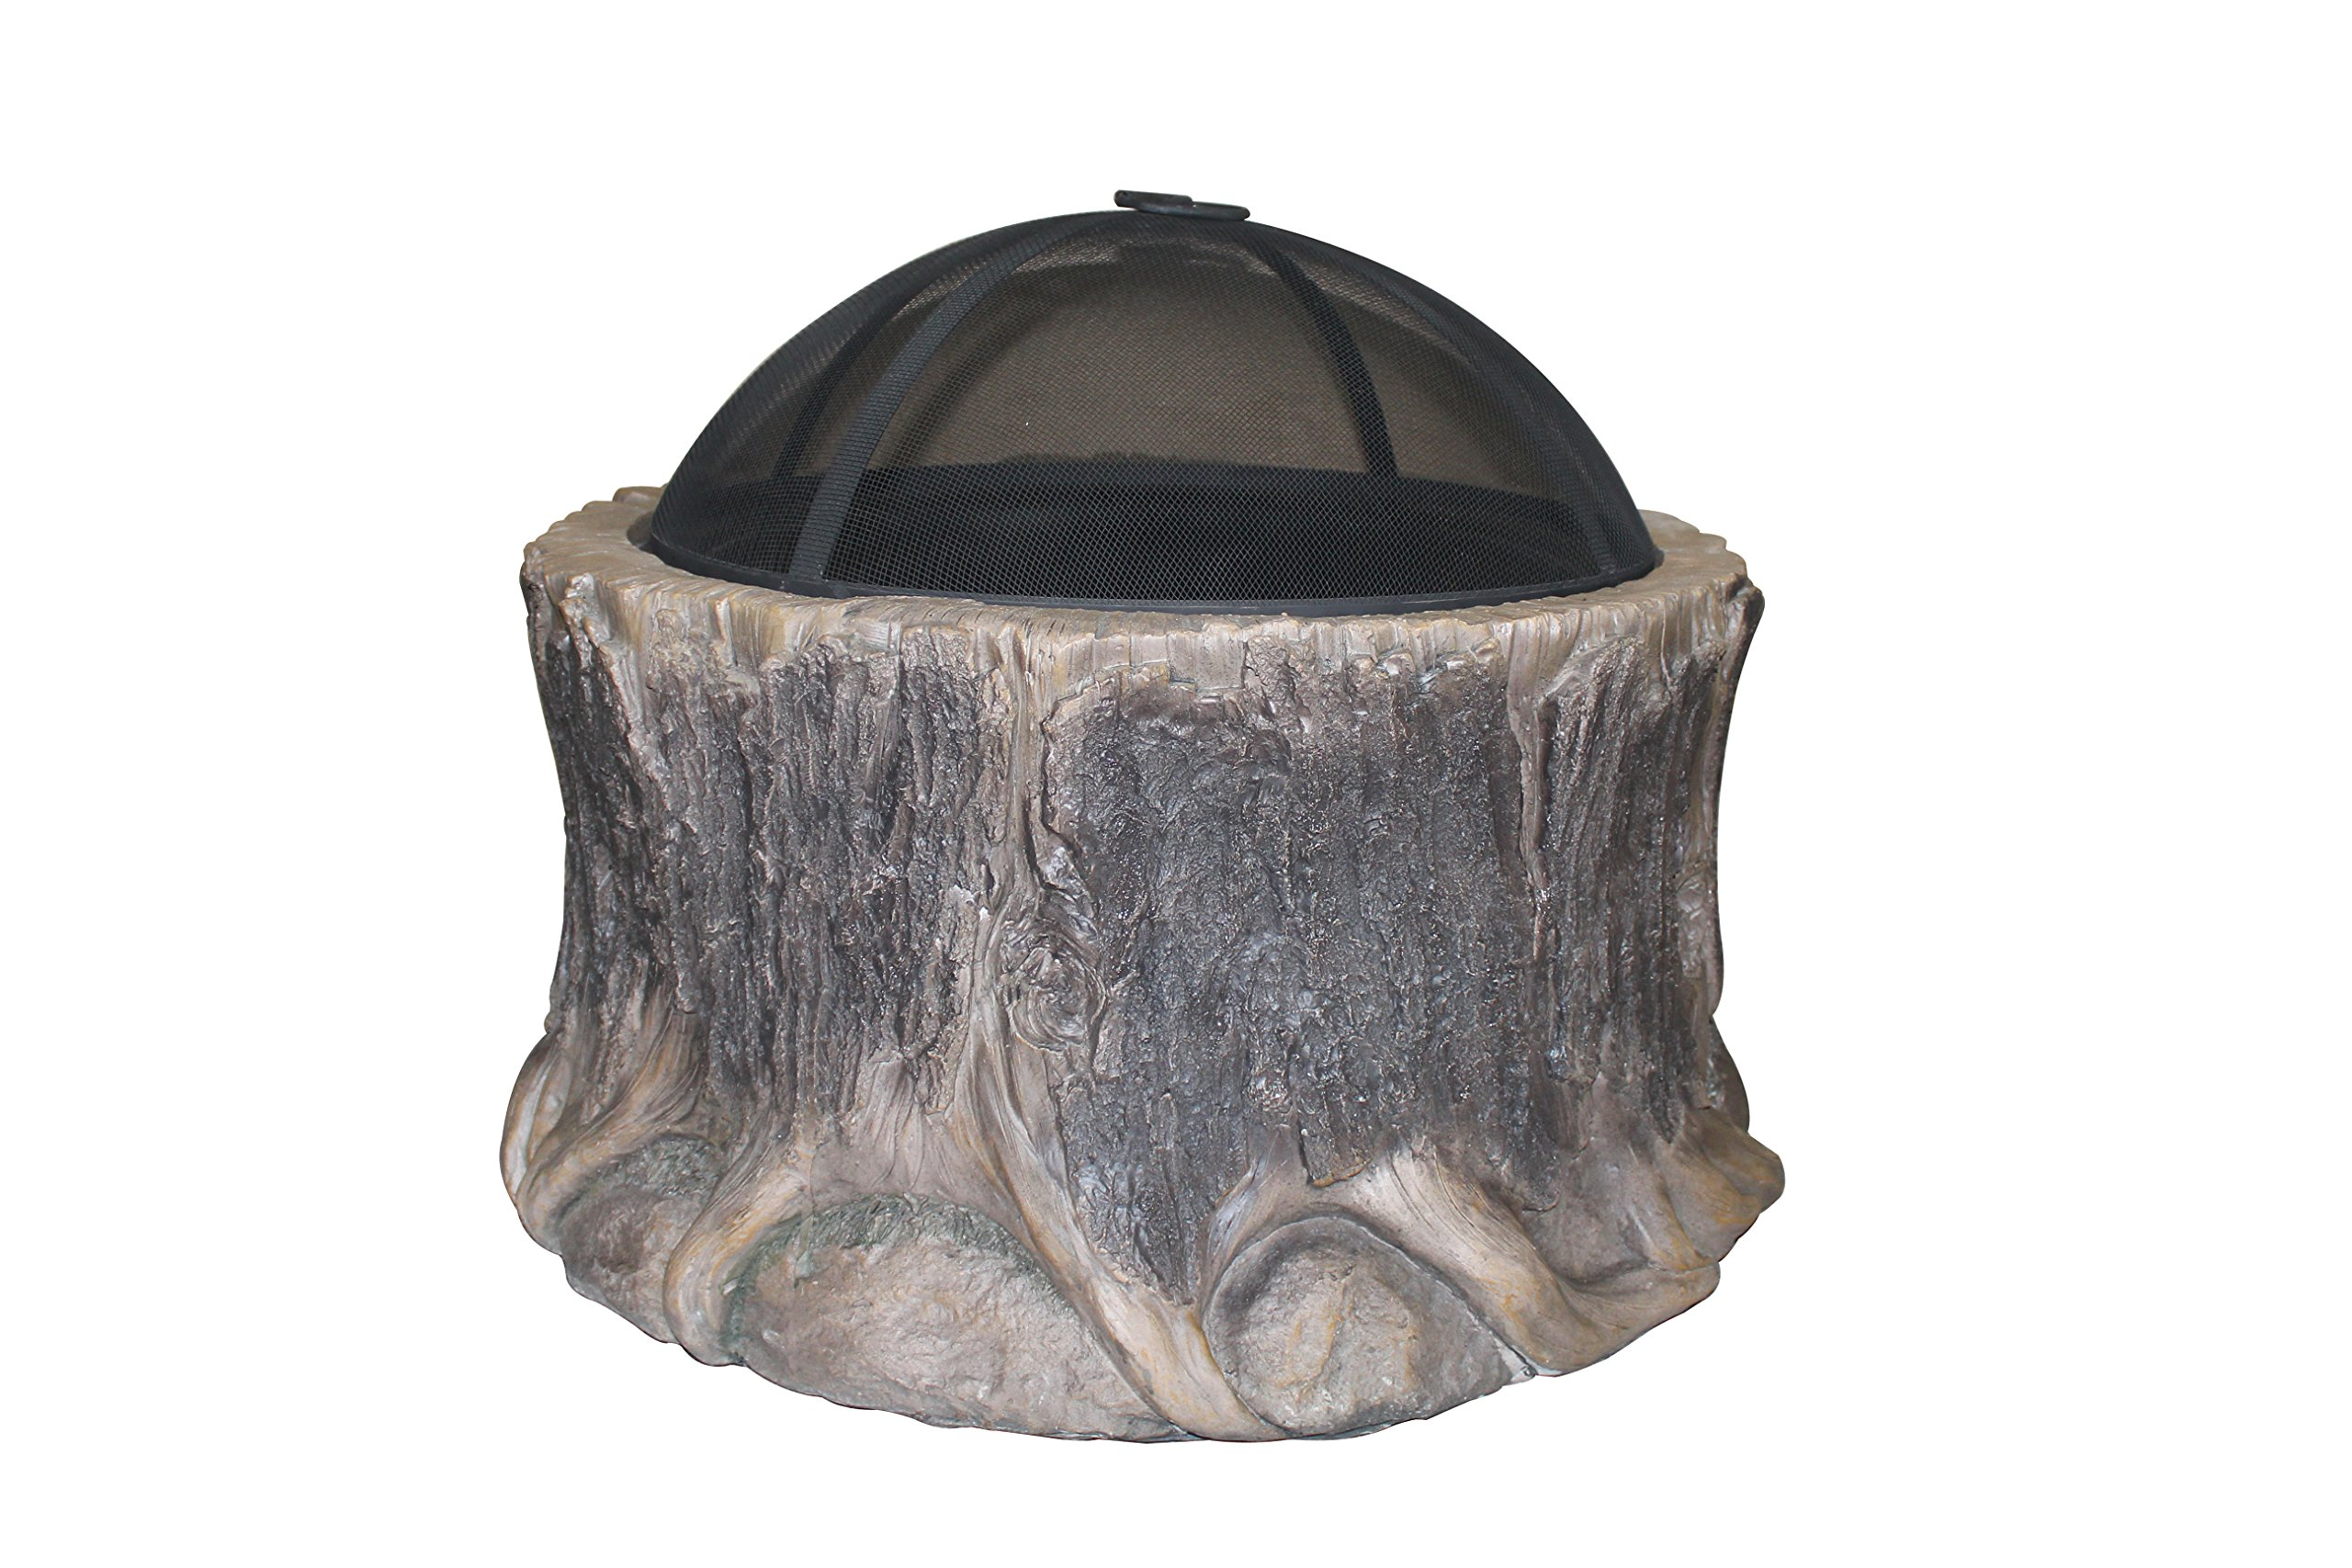 Peaktop HR28601AA Tree Wood Burning Fire Pit Outdoor Garden Old, 28 Inches, Gray - This fire pit is a wonderful addition to any patio and is sure to provide you and all of your guests with warmth for those mild summer nights. Sturdy light weight concrete construction designed. Spark screen and fire poker included. - patio, outdoor-decor, fire-pits-outdoor-fireplaces - 813pk9EECuL -